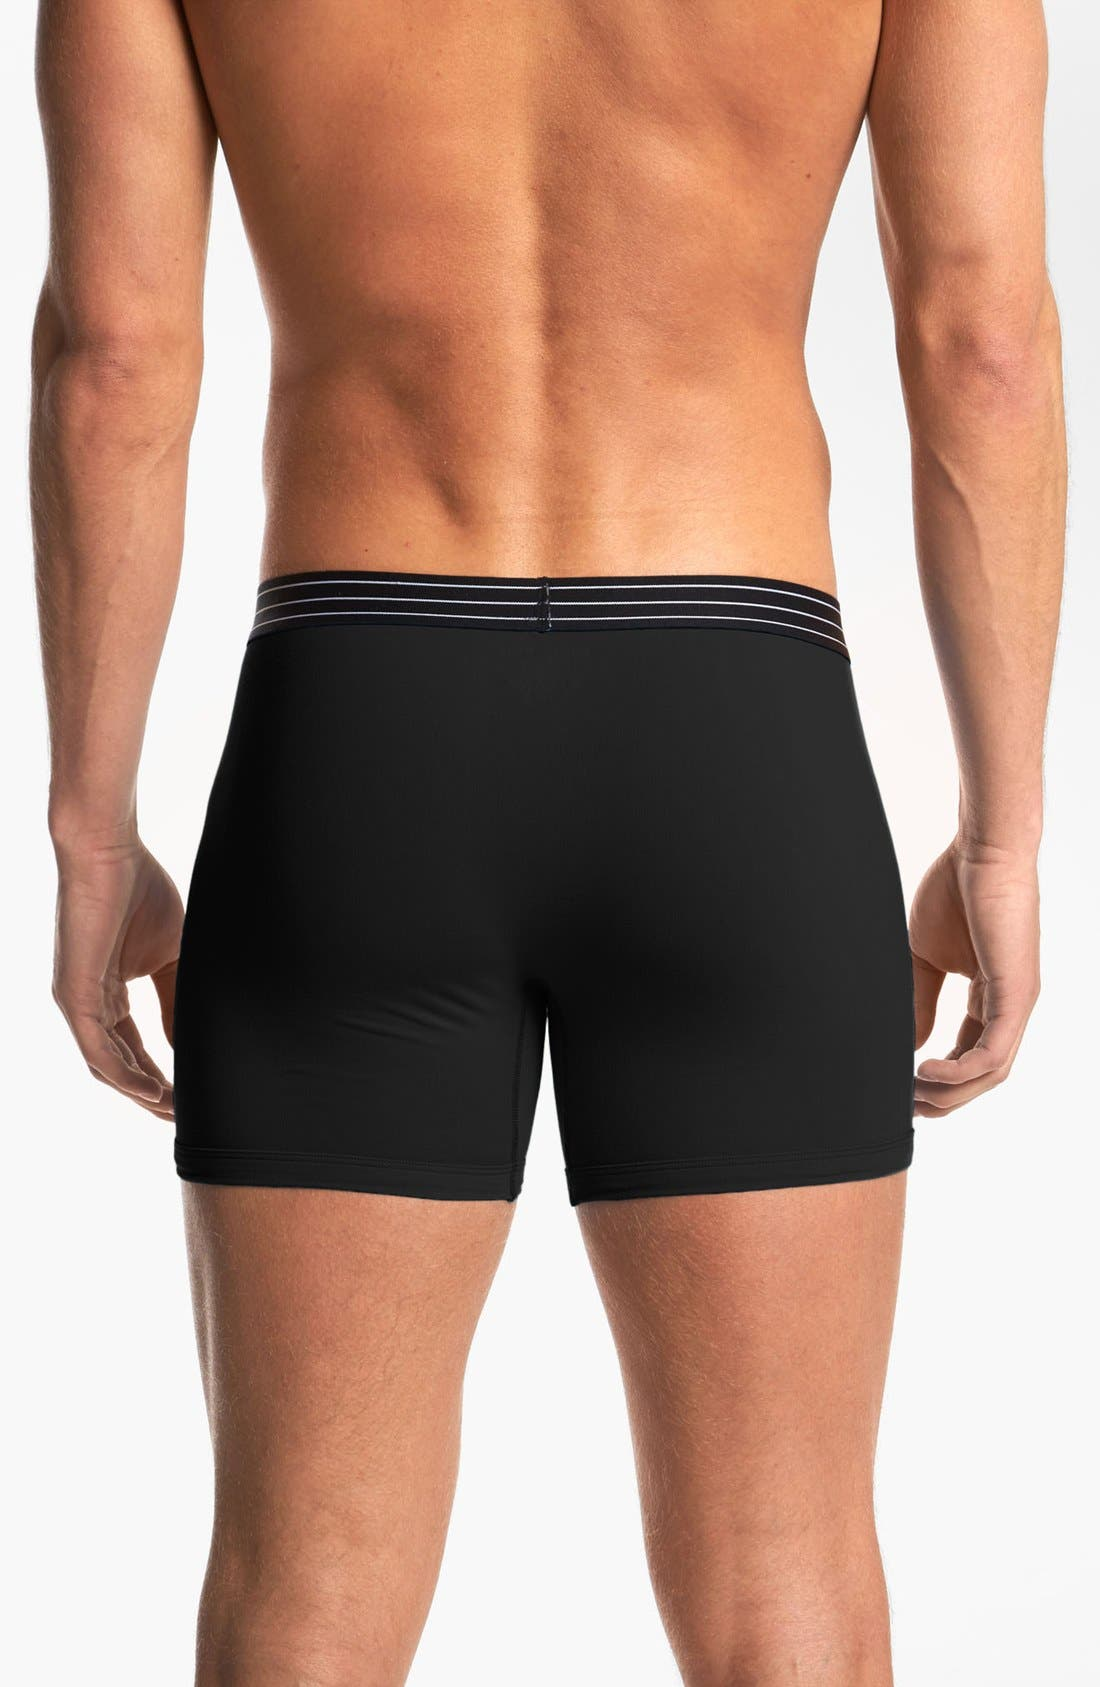 Alternate Image 2  - Michael Kors Microfiber Boxer Briefs